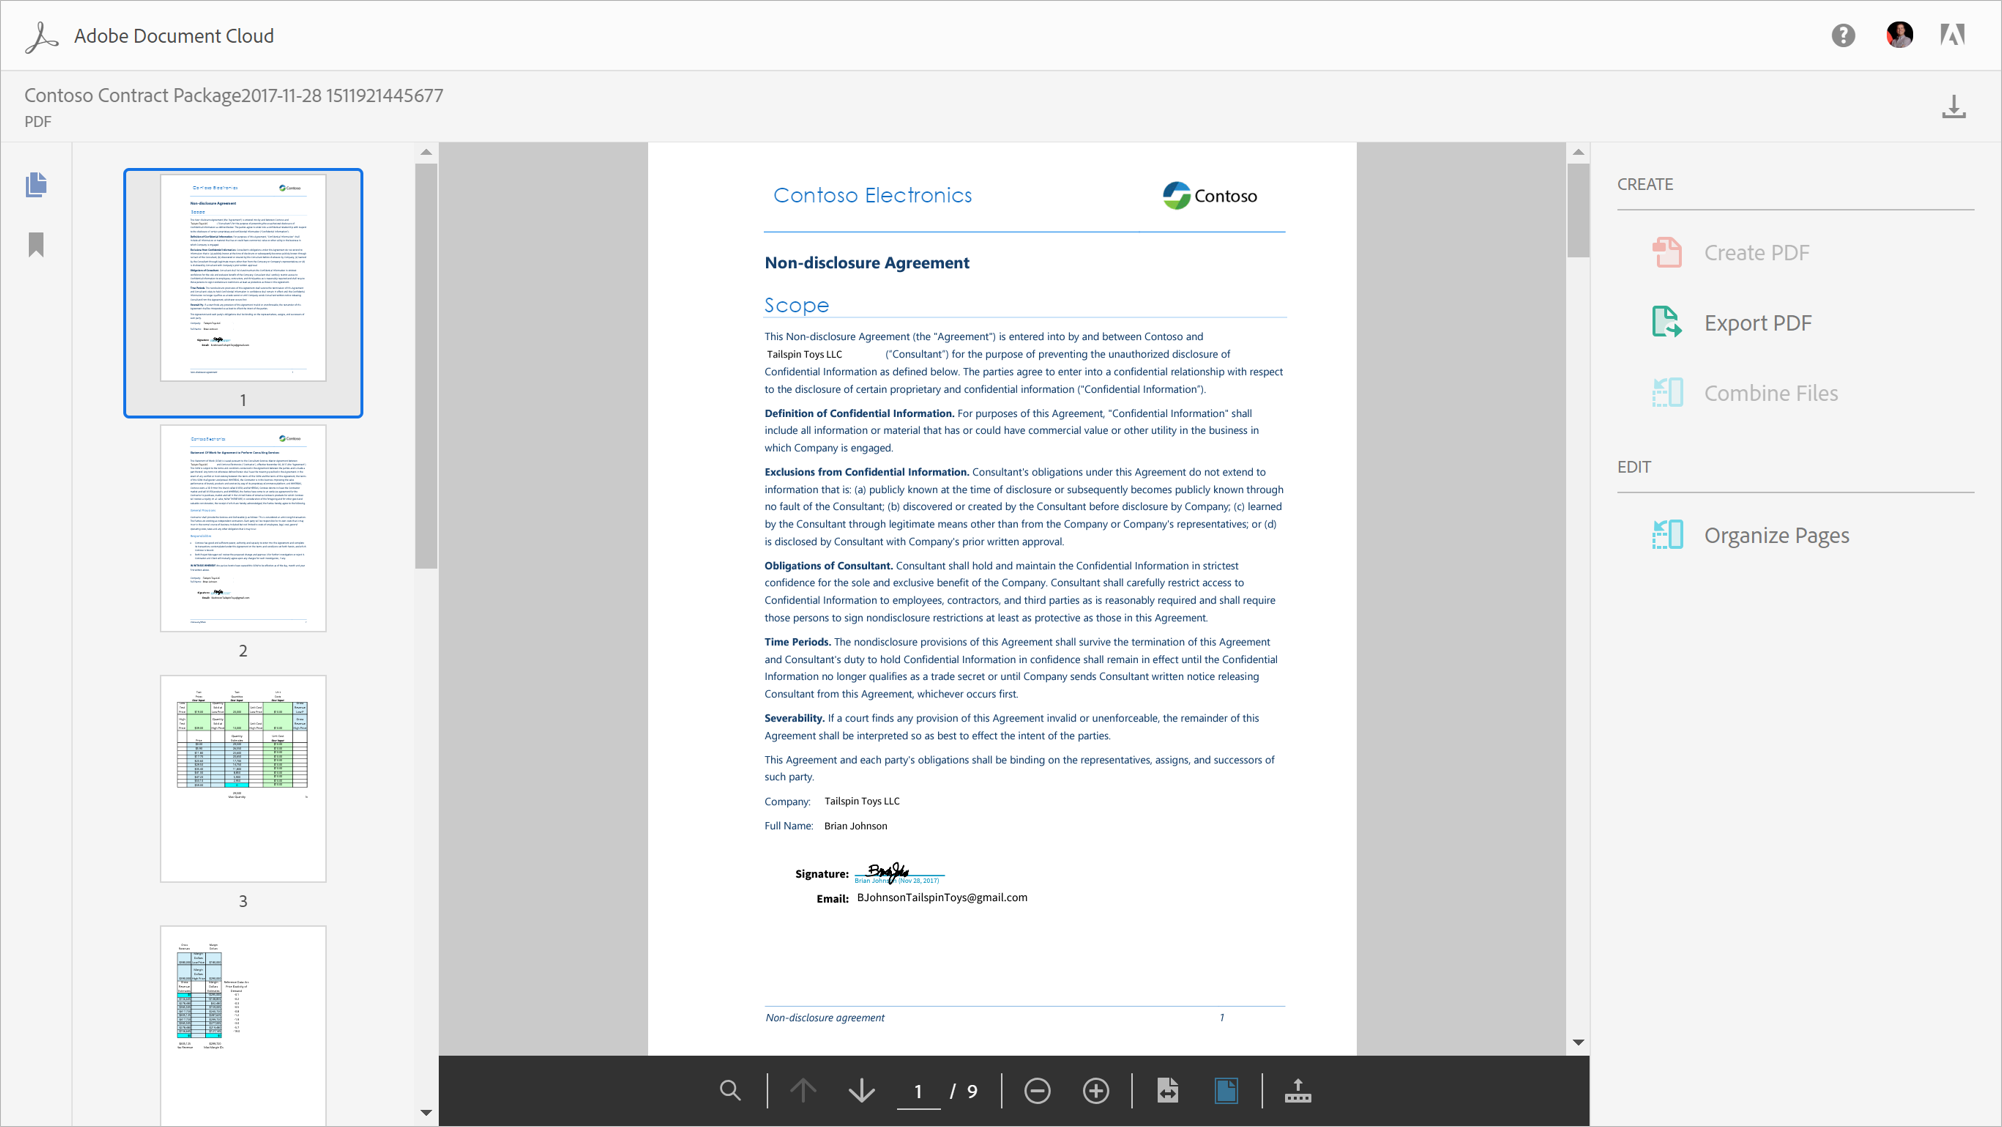 A screenshot displays a non-disclosure agreement in the Adobe Document Cloud.